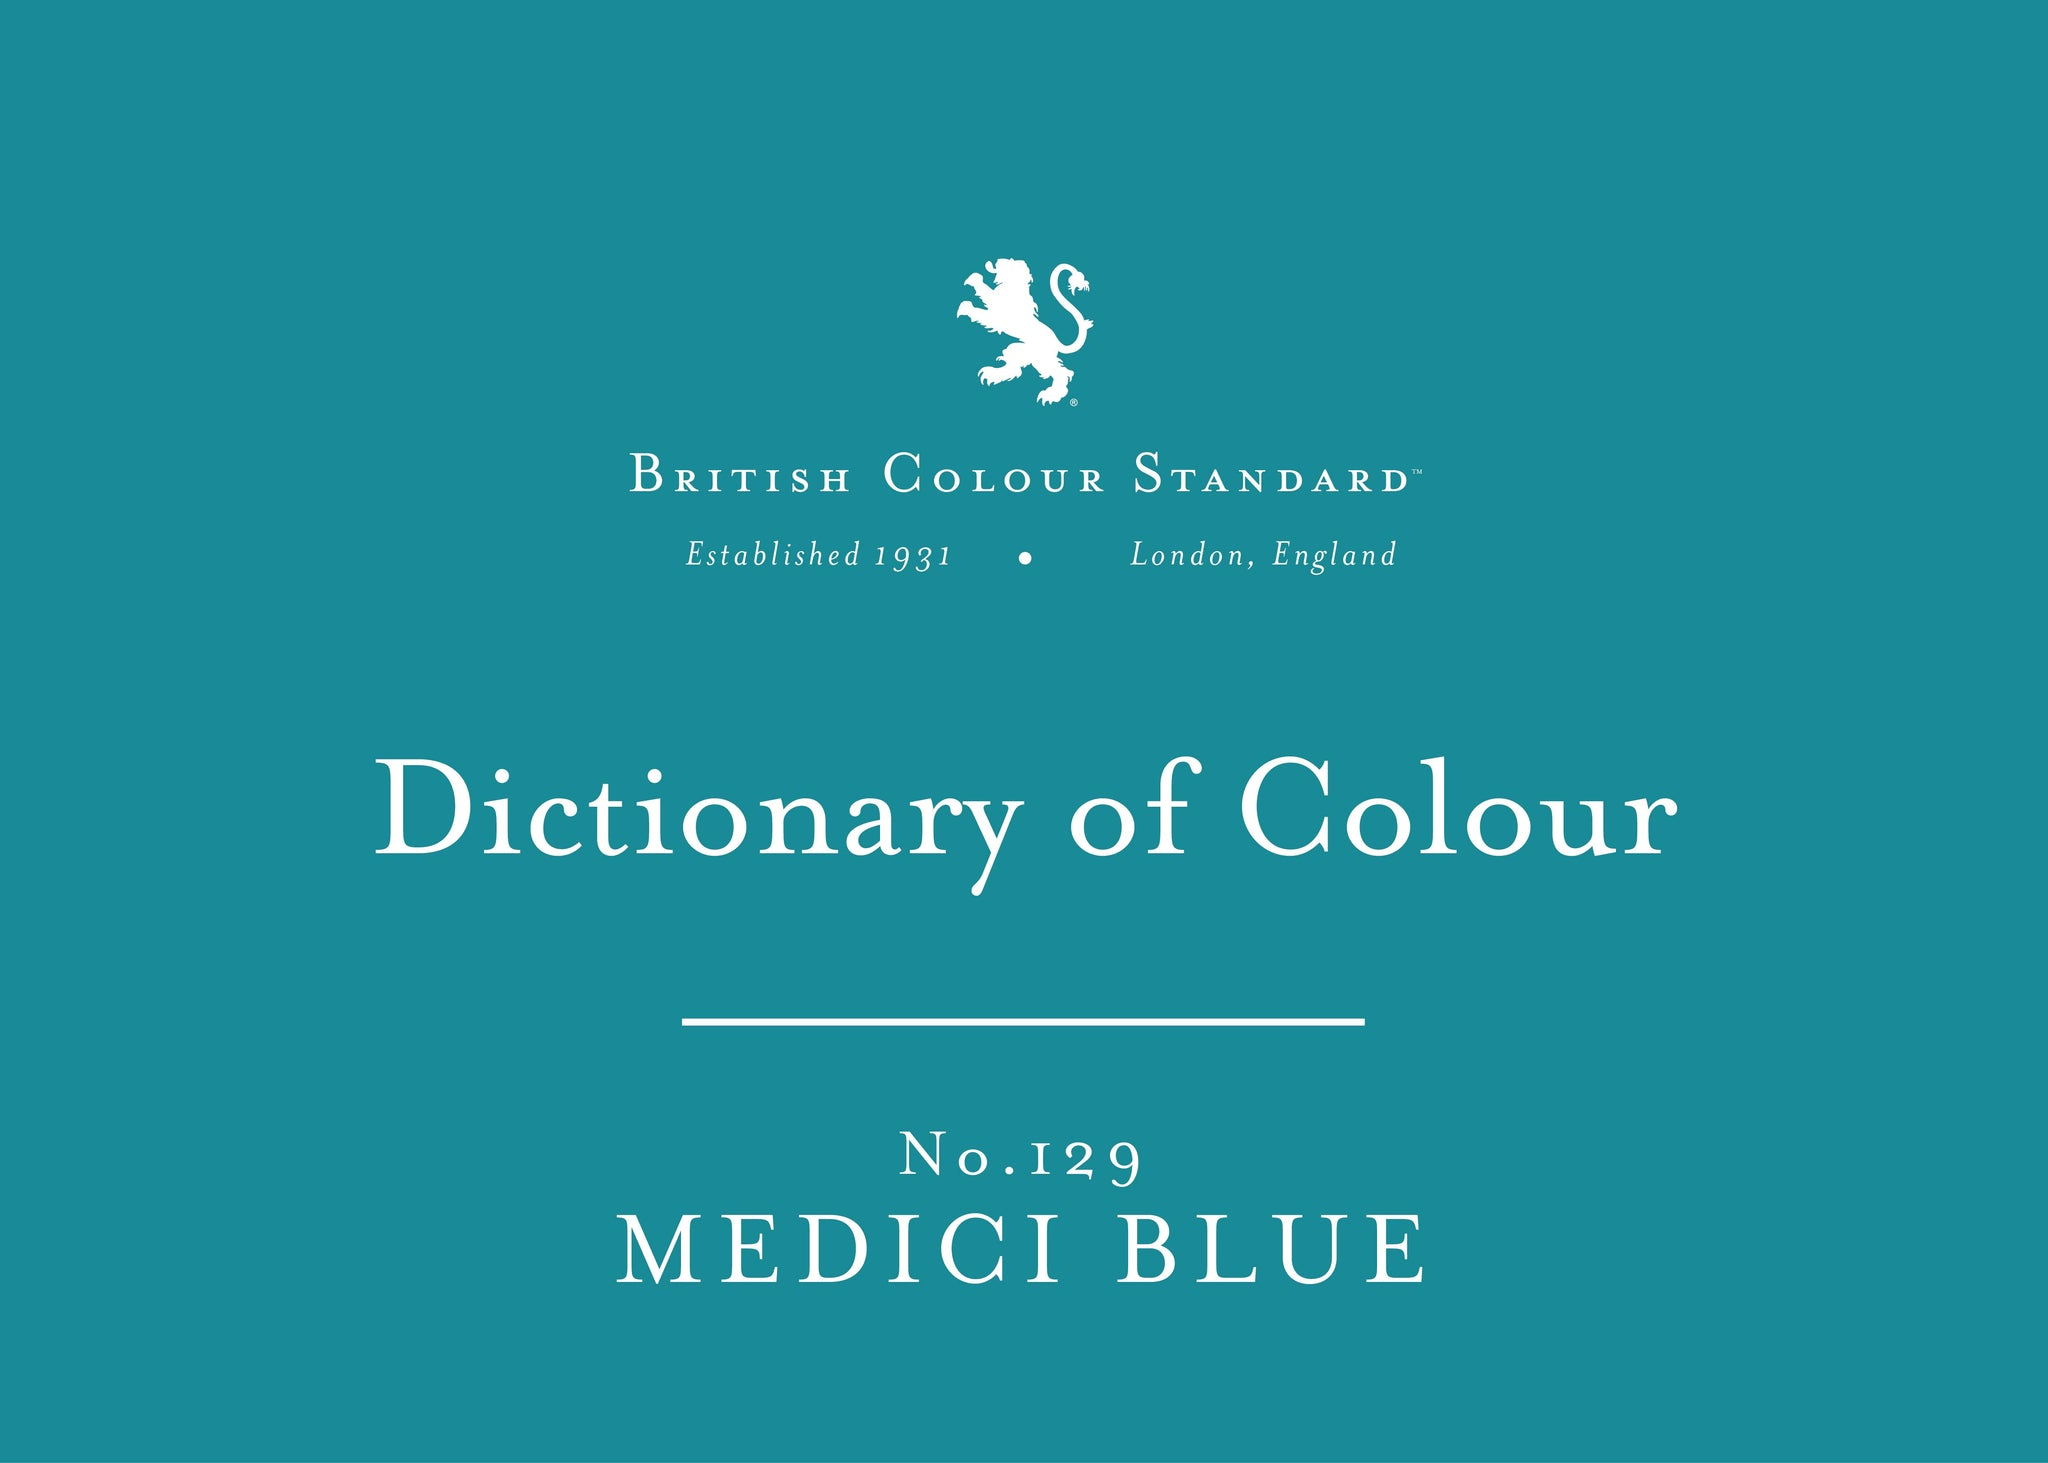 BRITISH COLOUR STANDARD - Medici Blue No.129